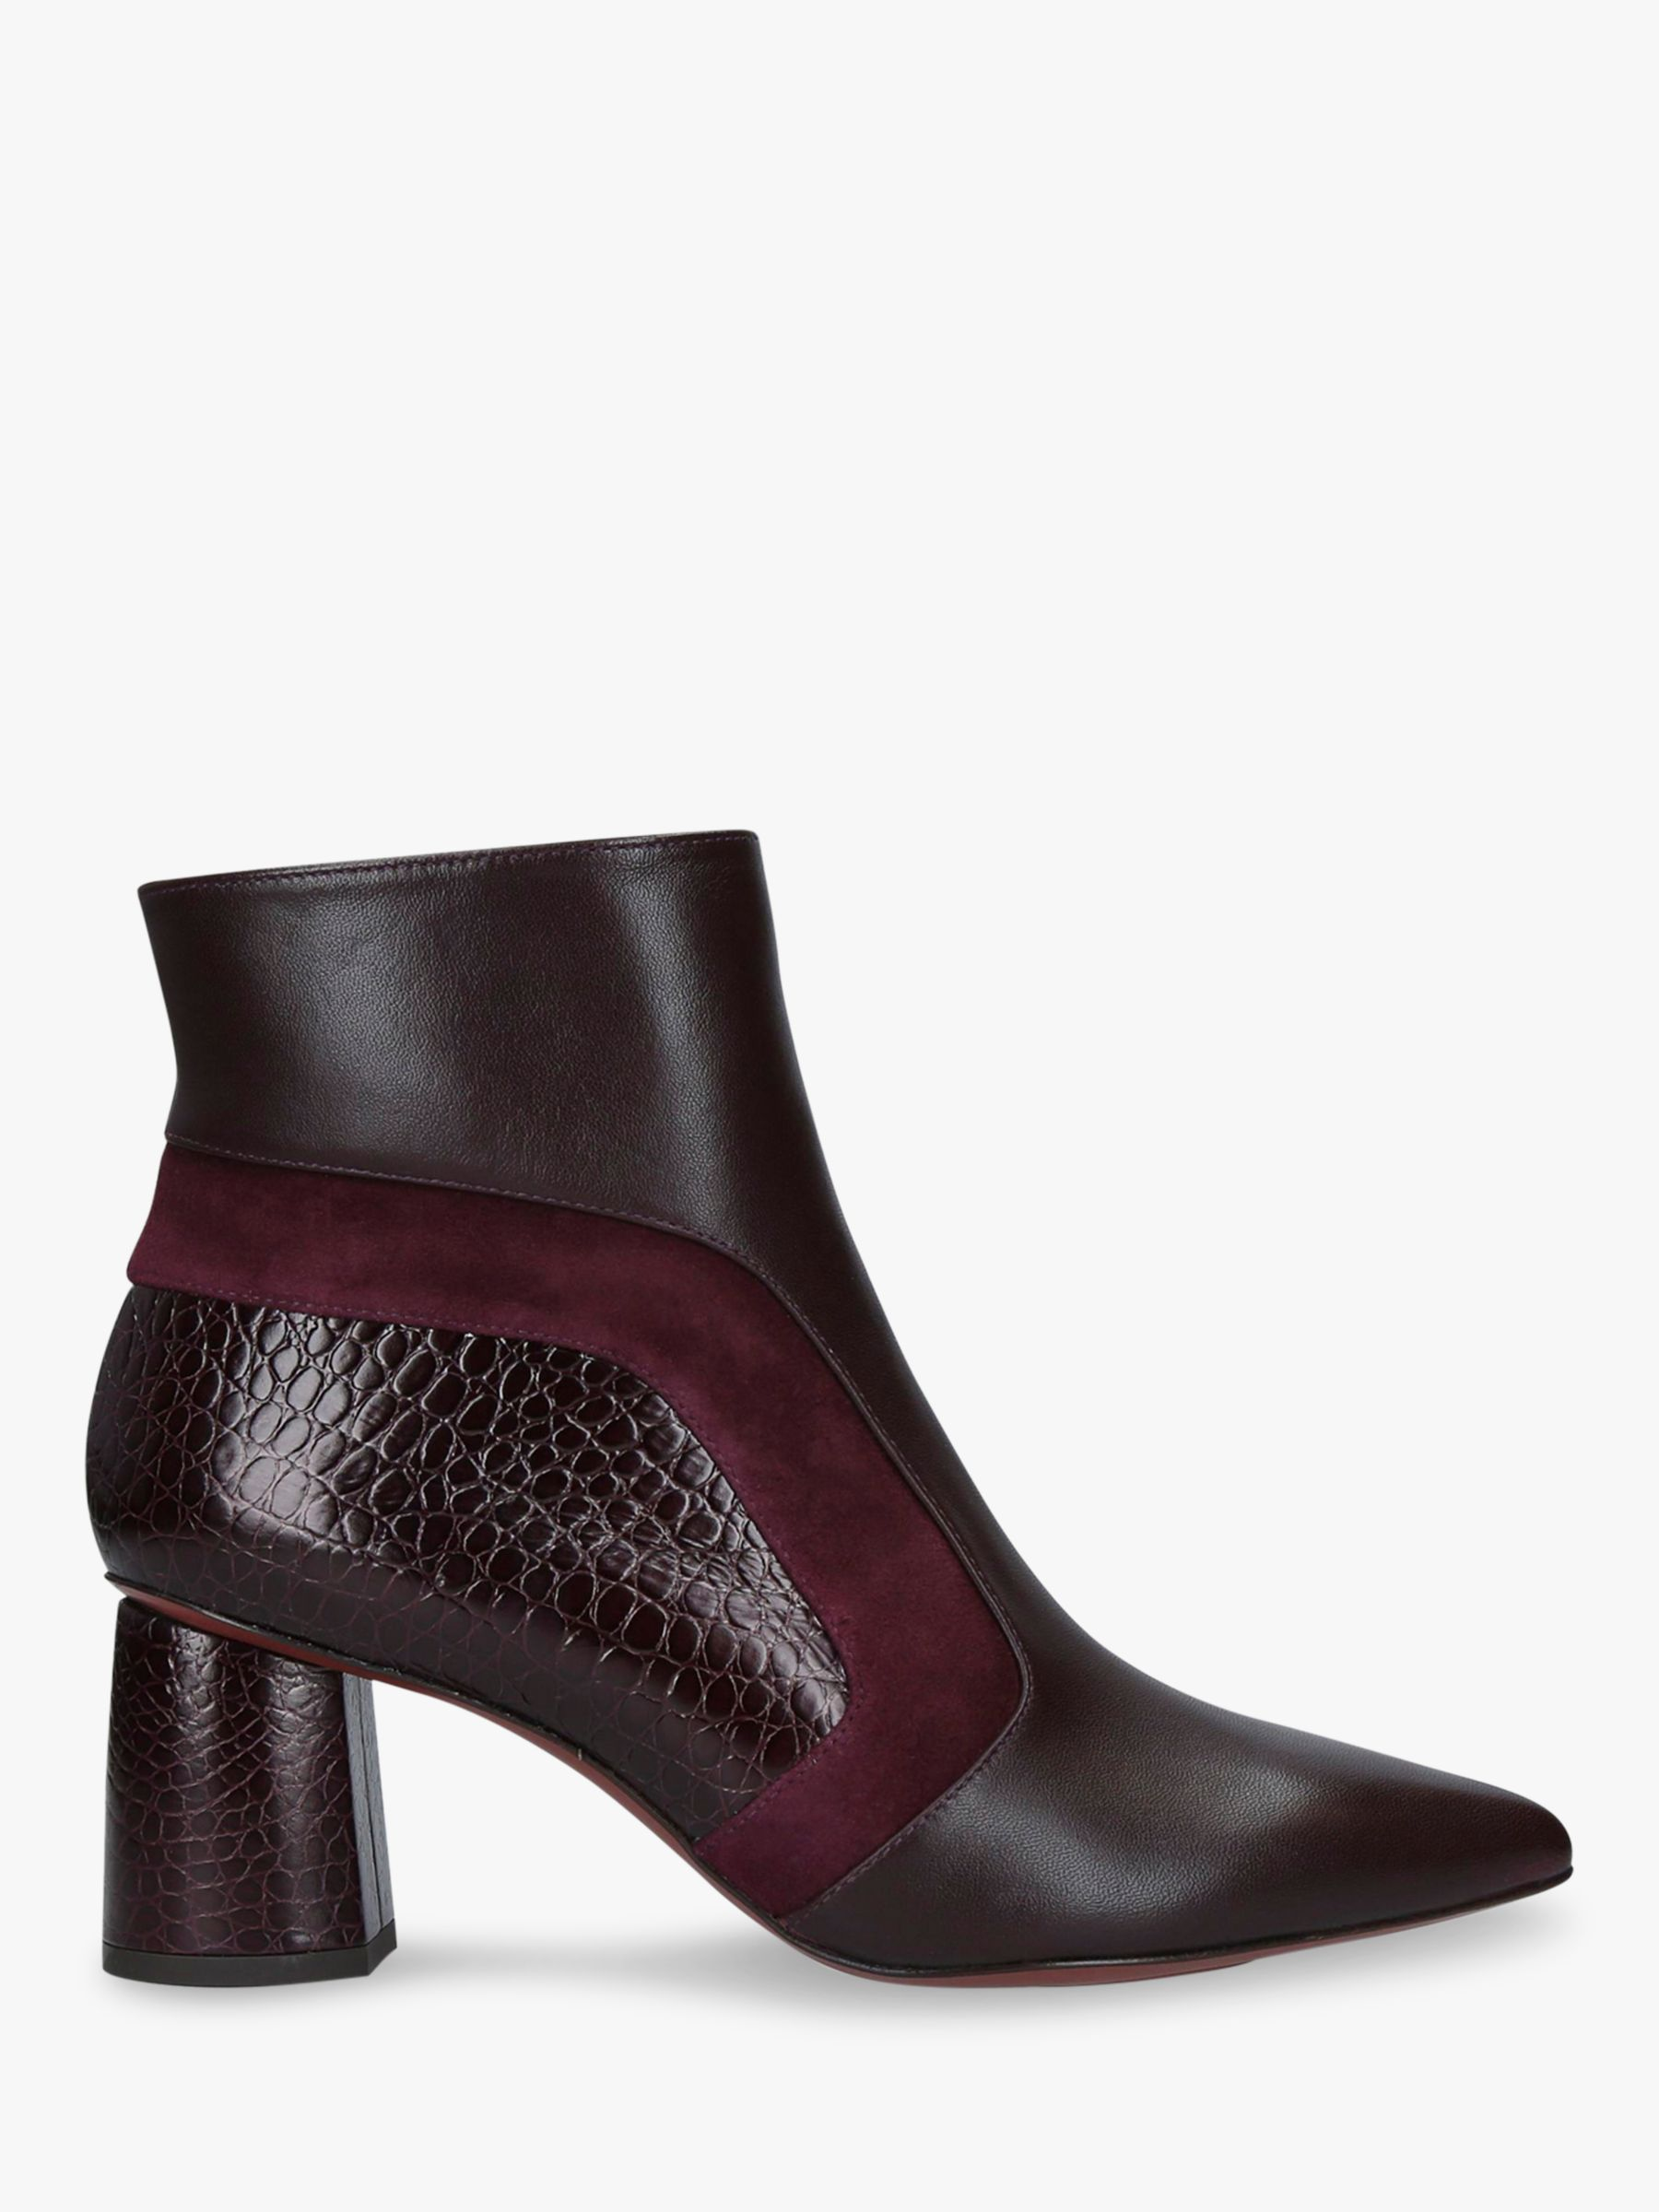 Chie Mihara Chie Mihara Lupe Suede and Leather Block Heel Ankle Boots, Wine